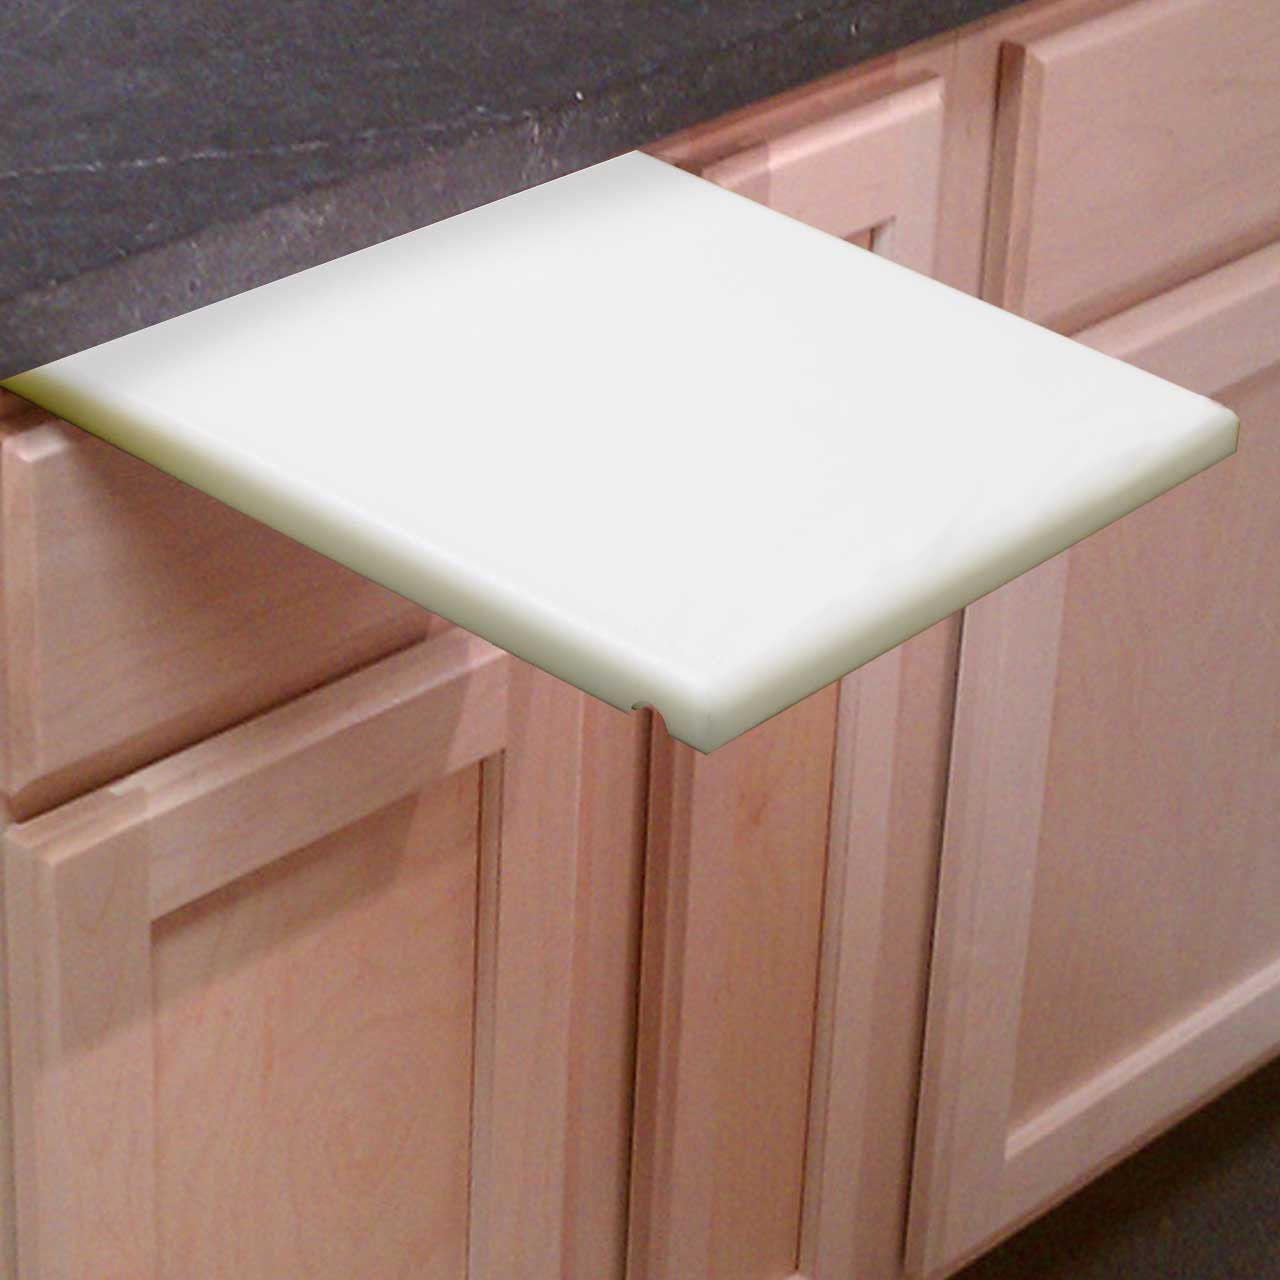 Pull out white cutting board 3 4 inch thick cutting for White cutting board used for